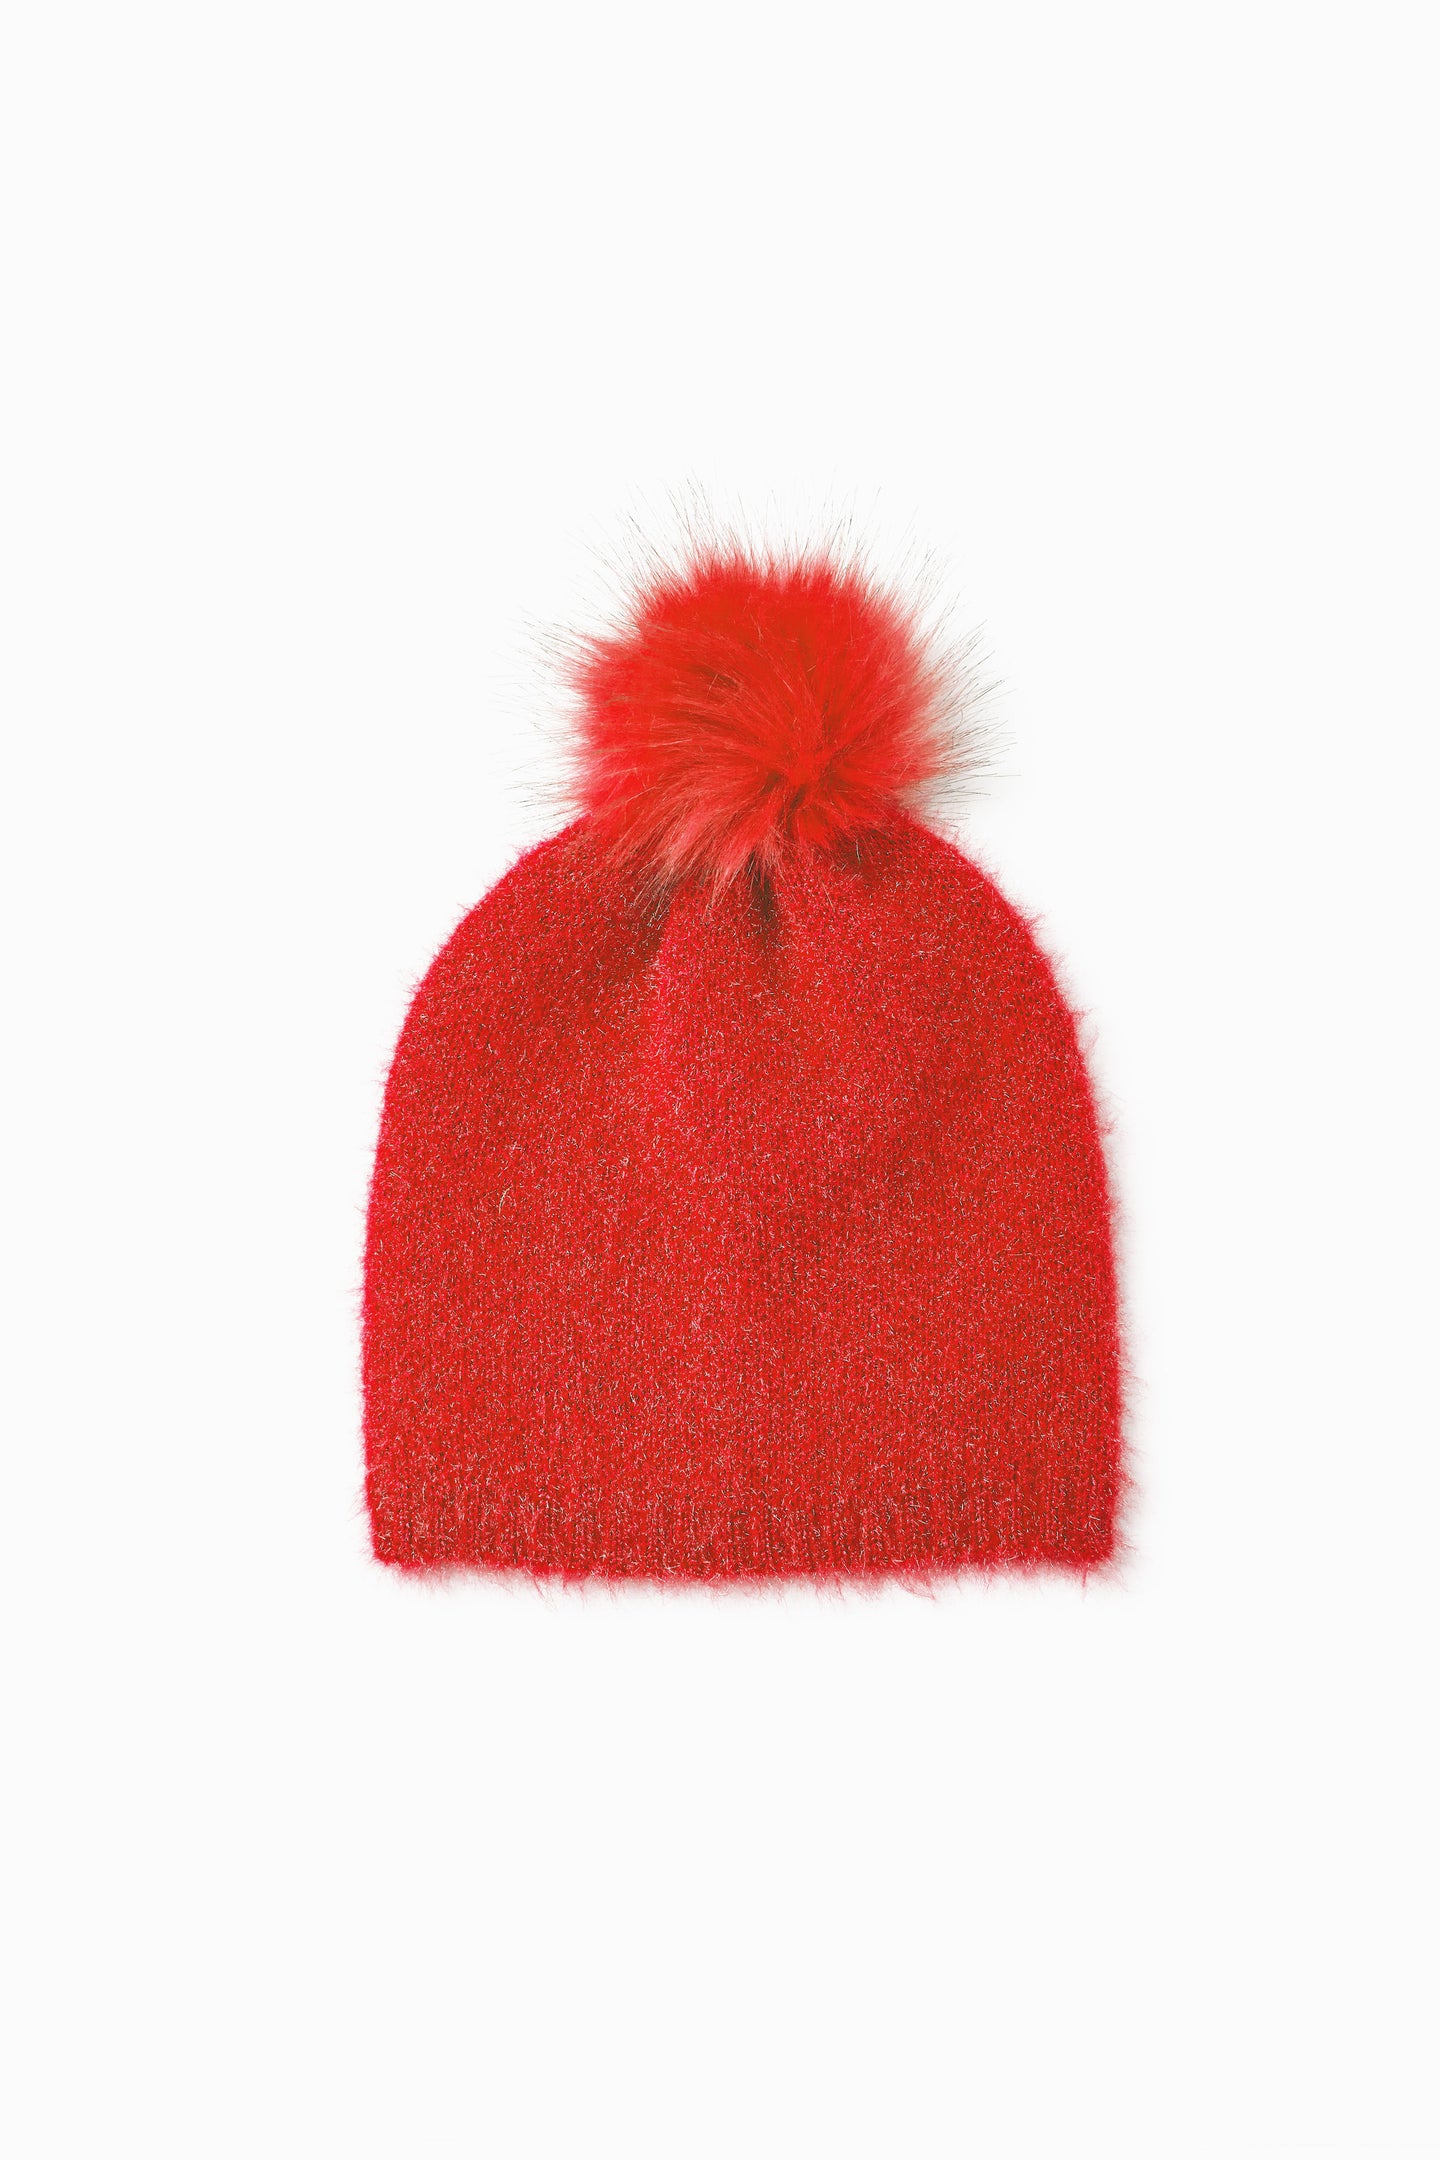 Red Pom Pom Hat - Red